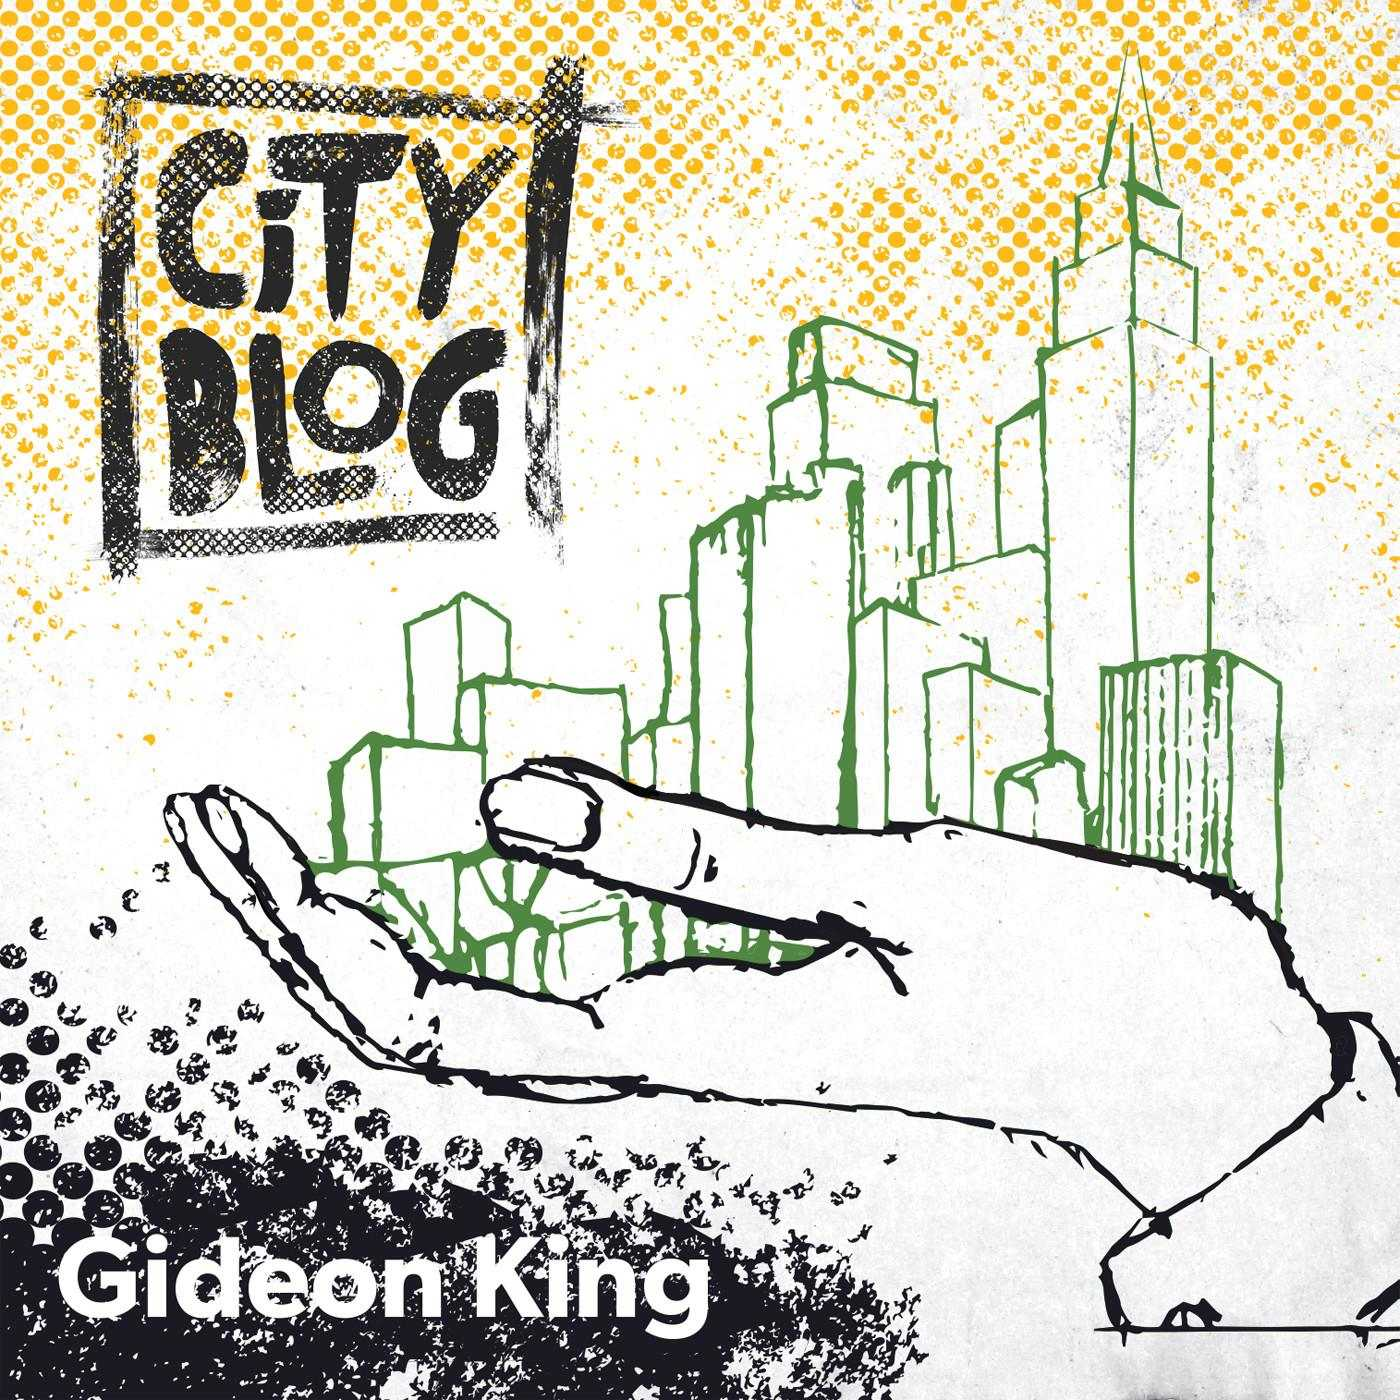 Versatile Gideon King Is Back With New Album City Blog | Gideon King